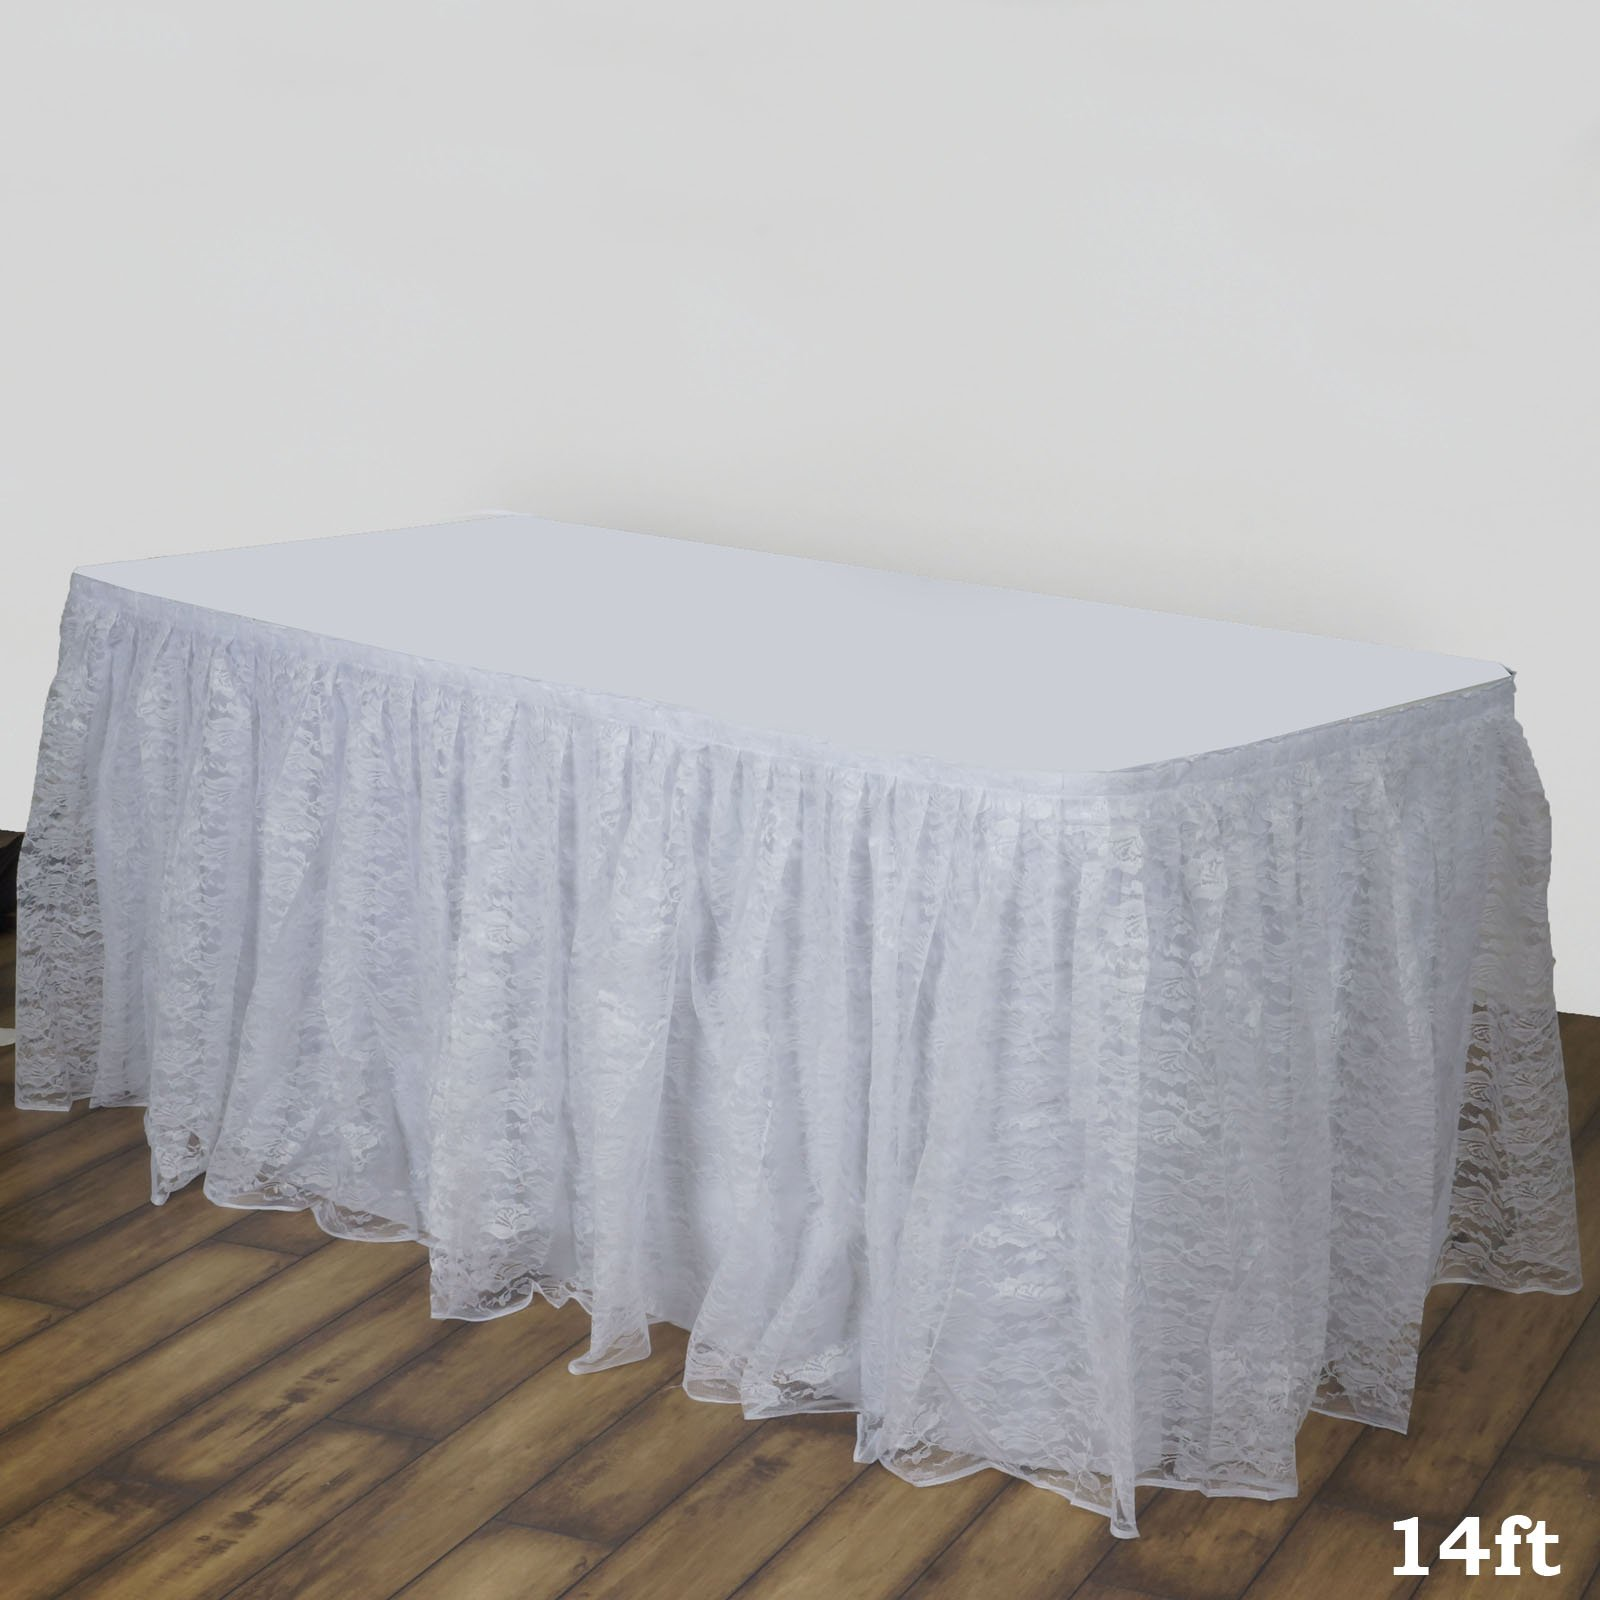 BalsaCircle 14 feet x 29-Inch White Premium Lace Banquet Table Skirt Linens Wedding Party Events Decorations Kitchen Dining